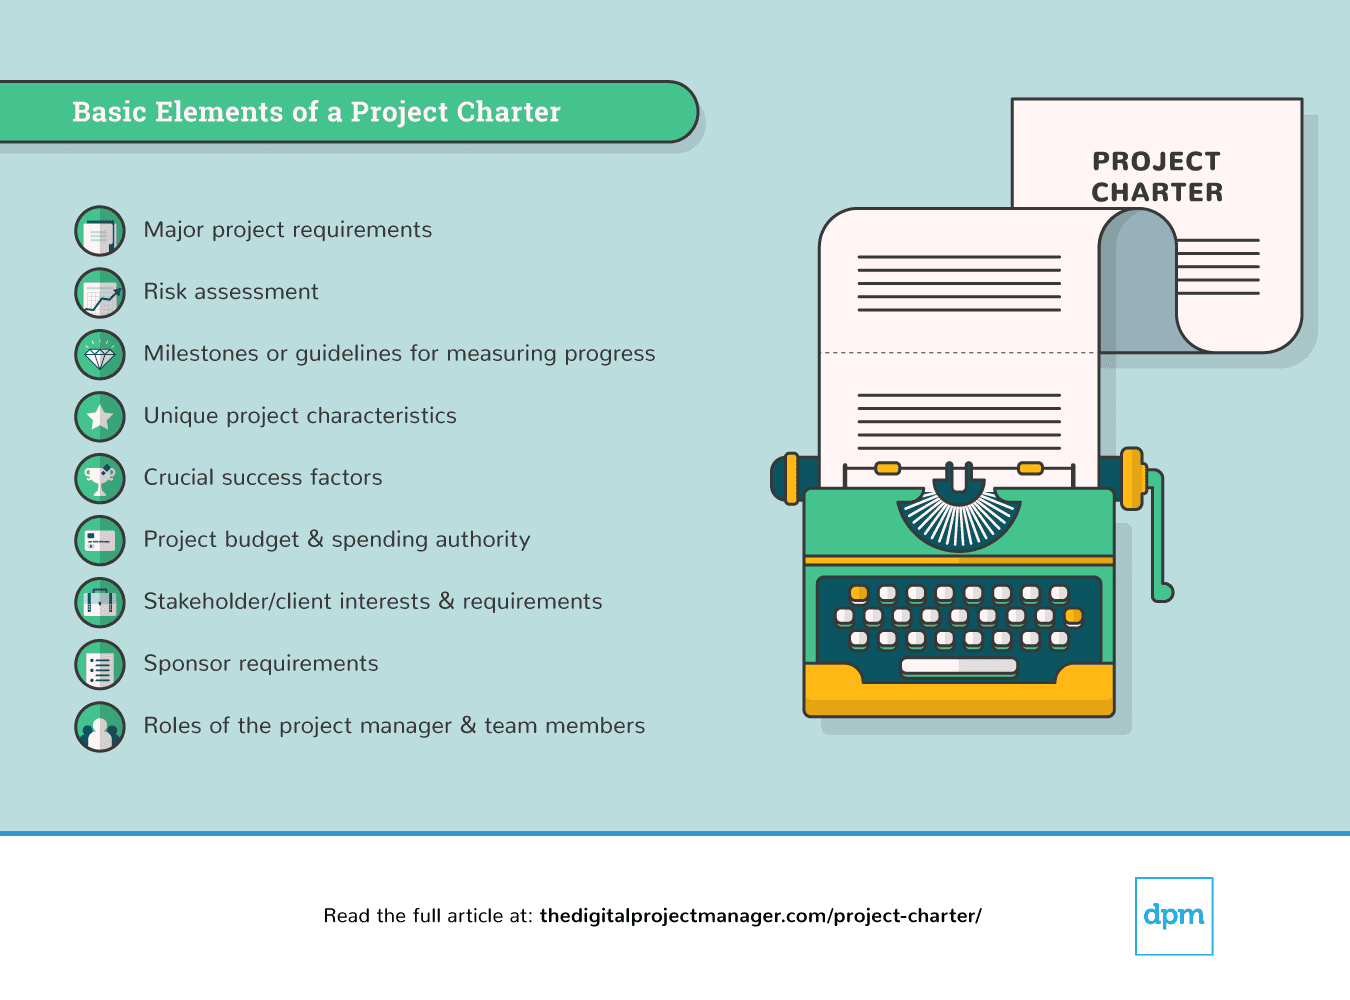 project-charter-elements